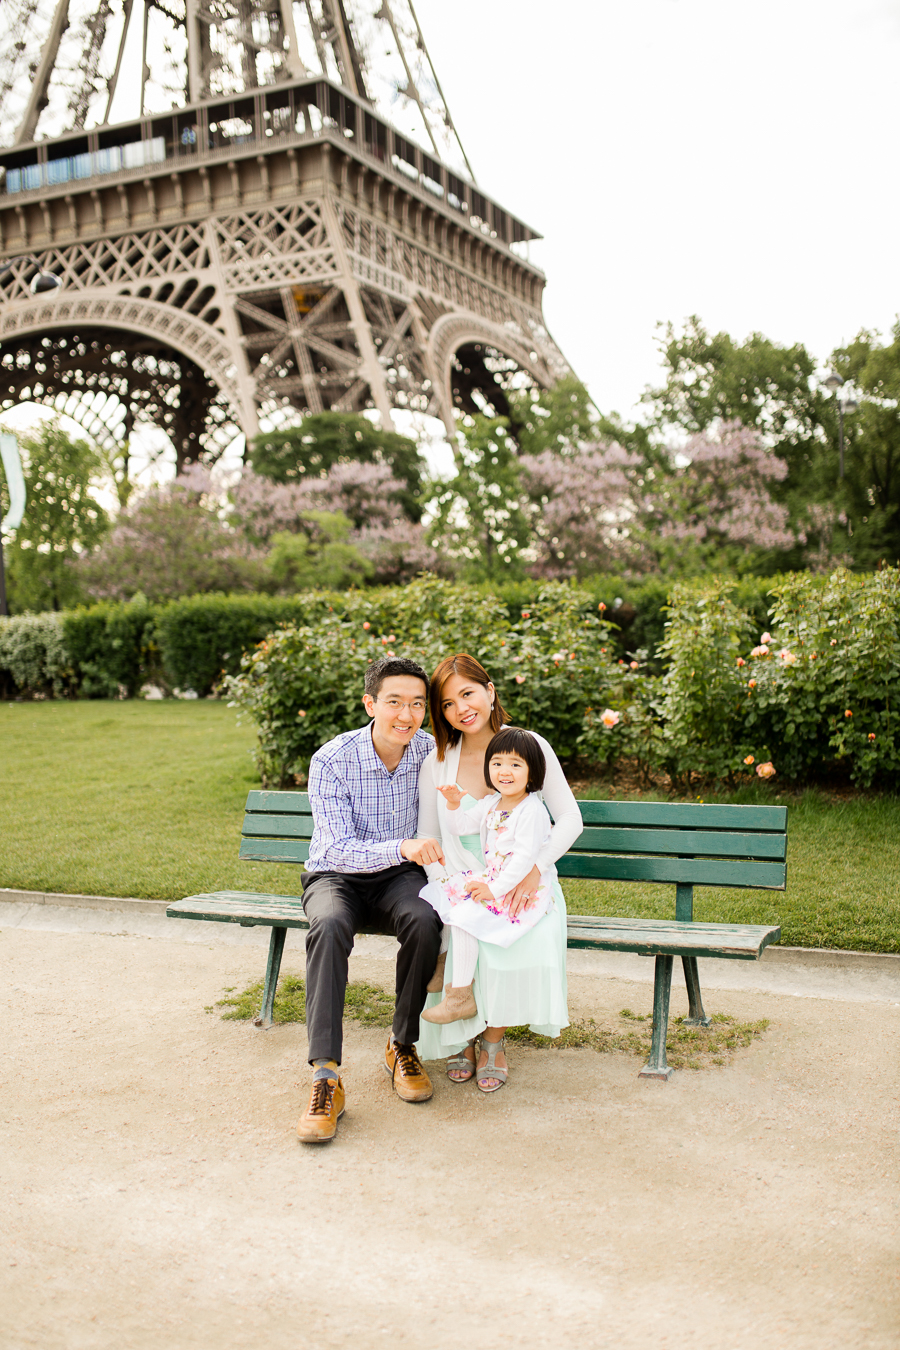 family-portraits-eiffel-tower-paris-photographer_007.jpg